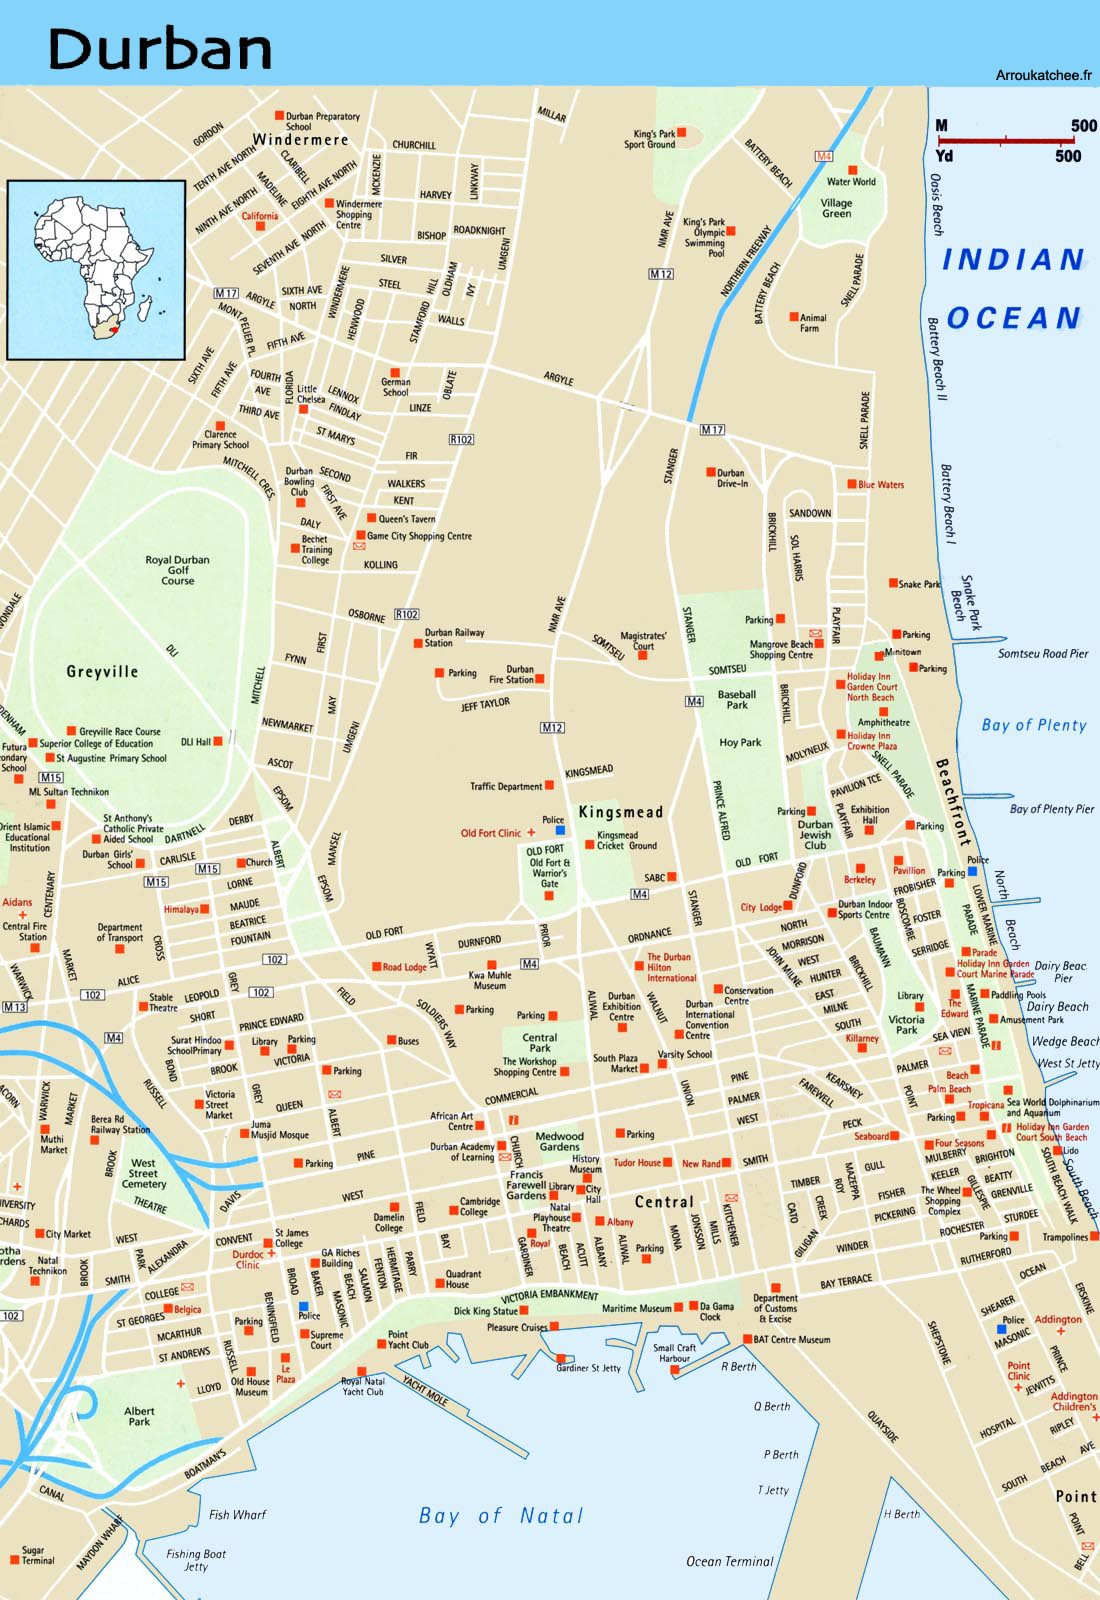 Durban street map